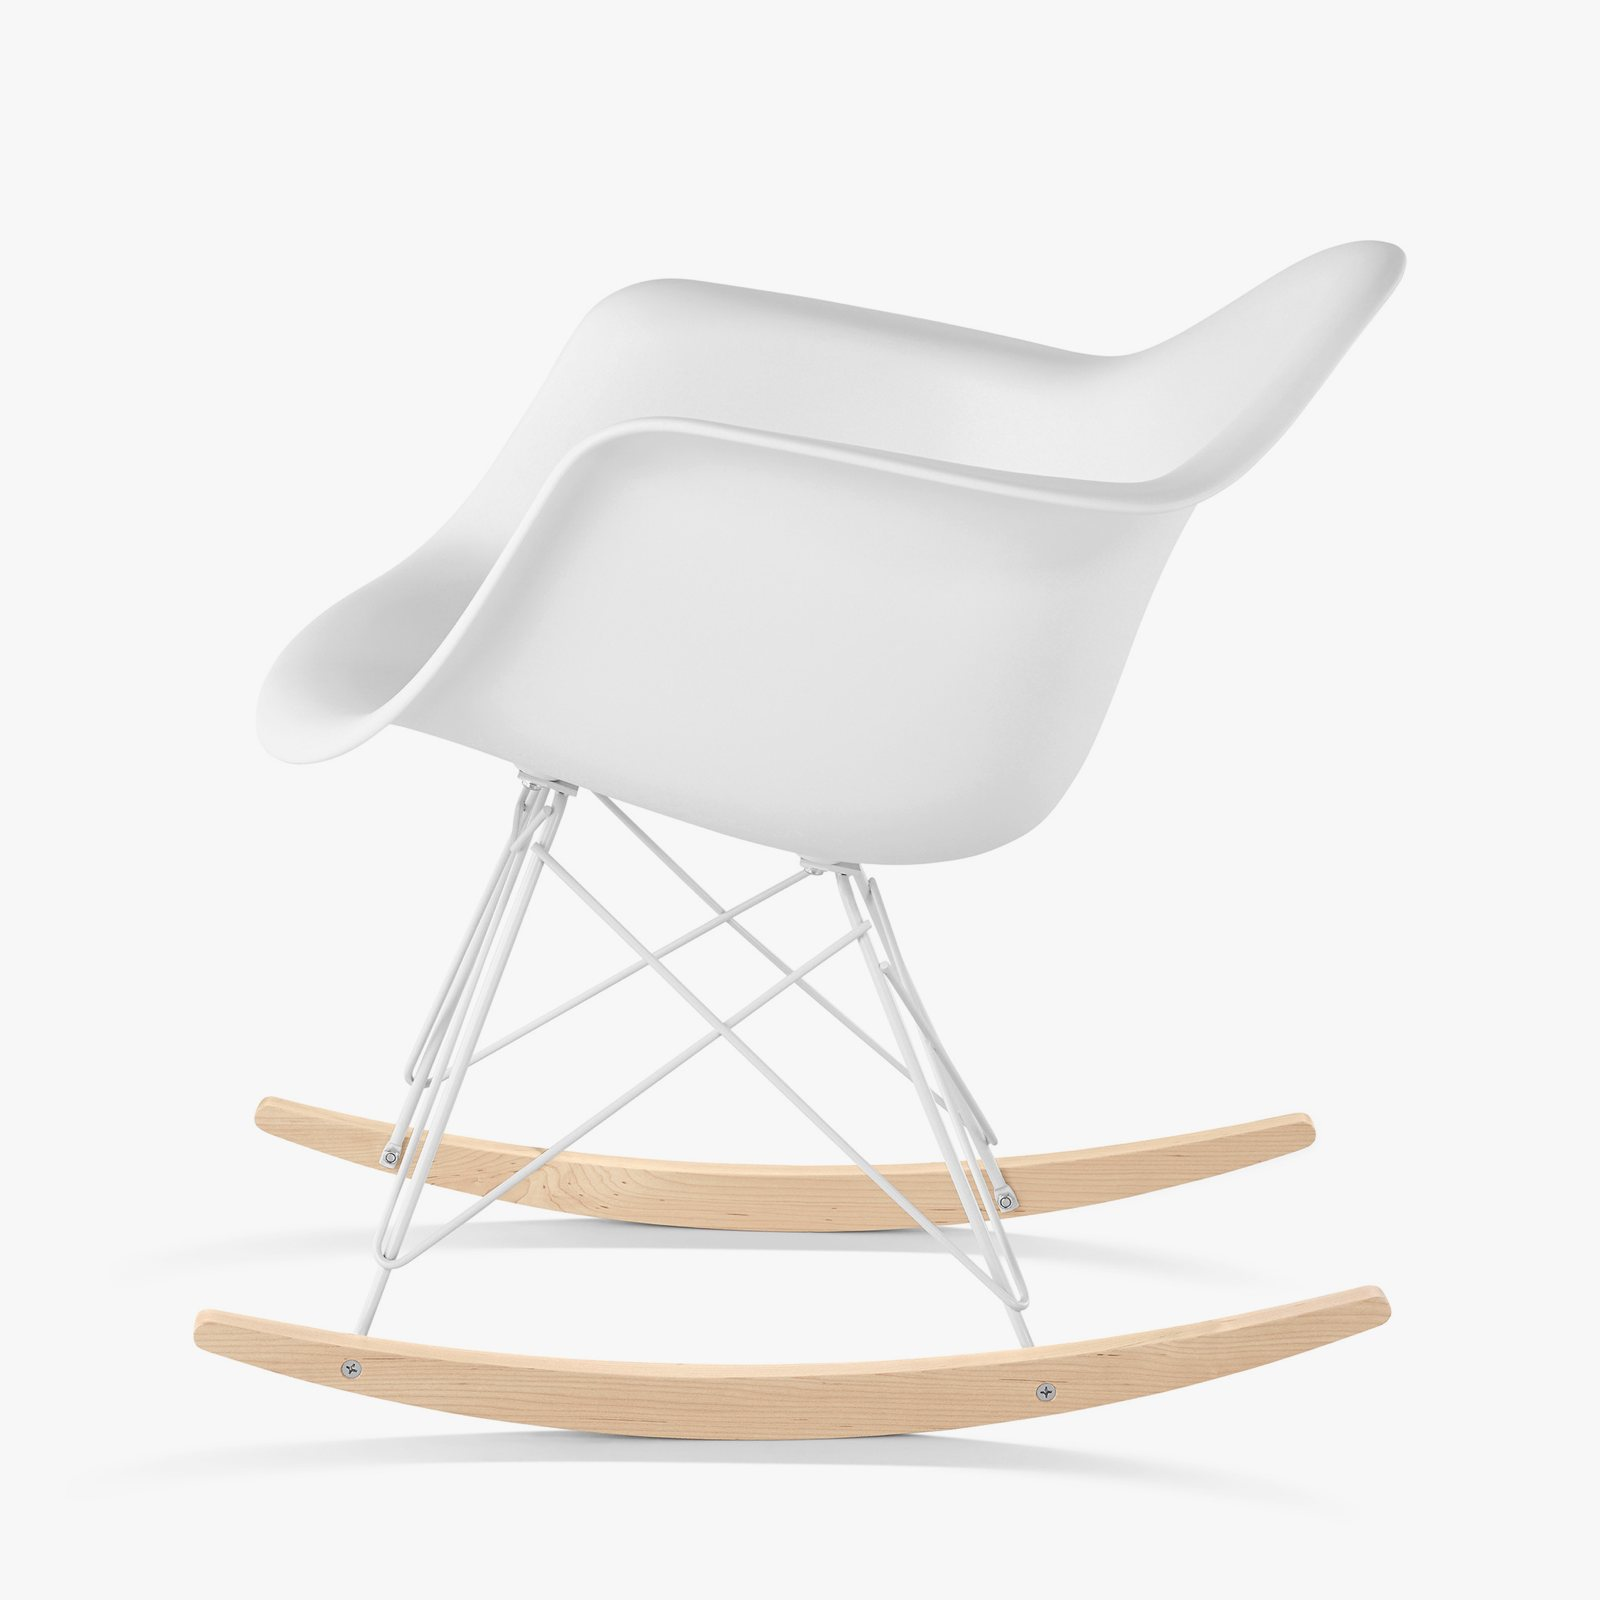 Eames Molded Plastic Armchair Rocker Base, White, Side View.